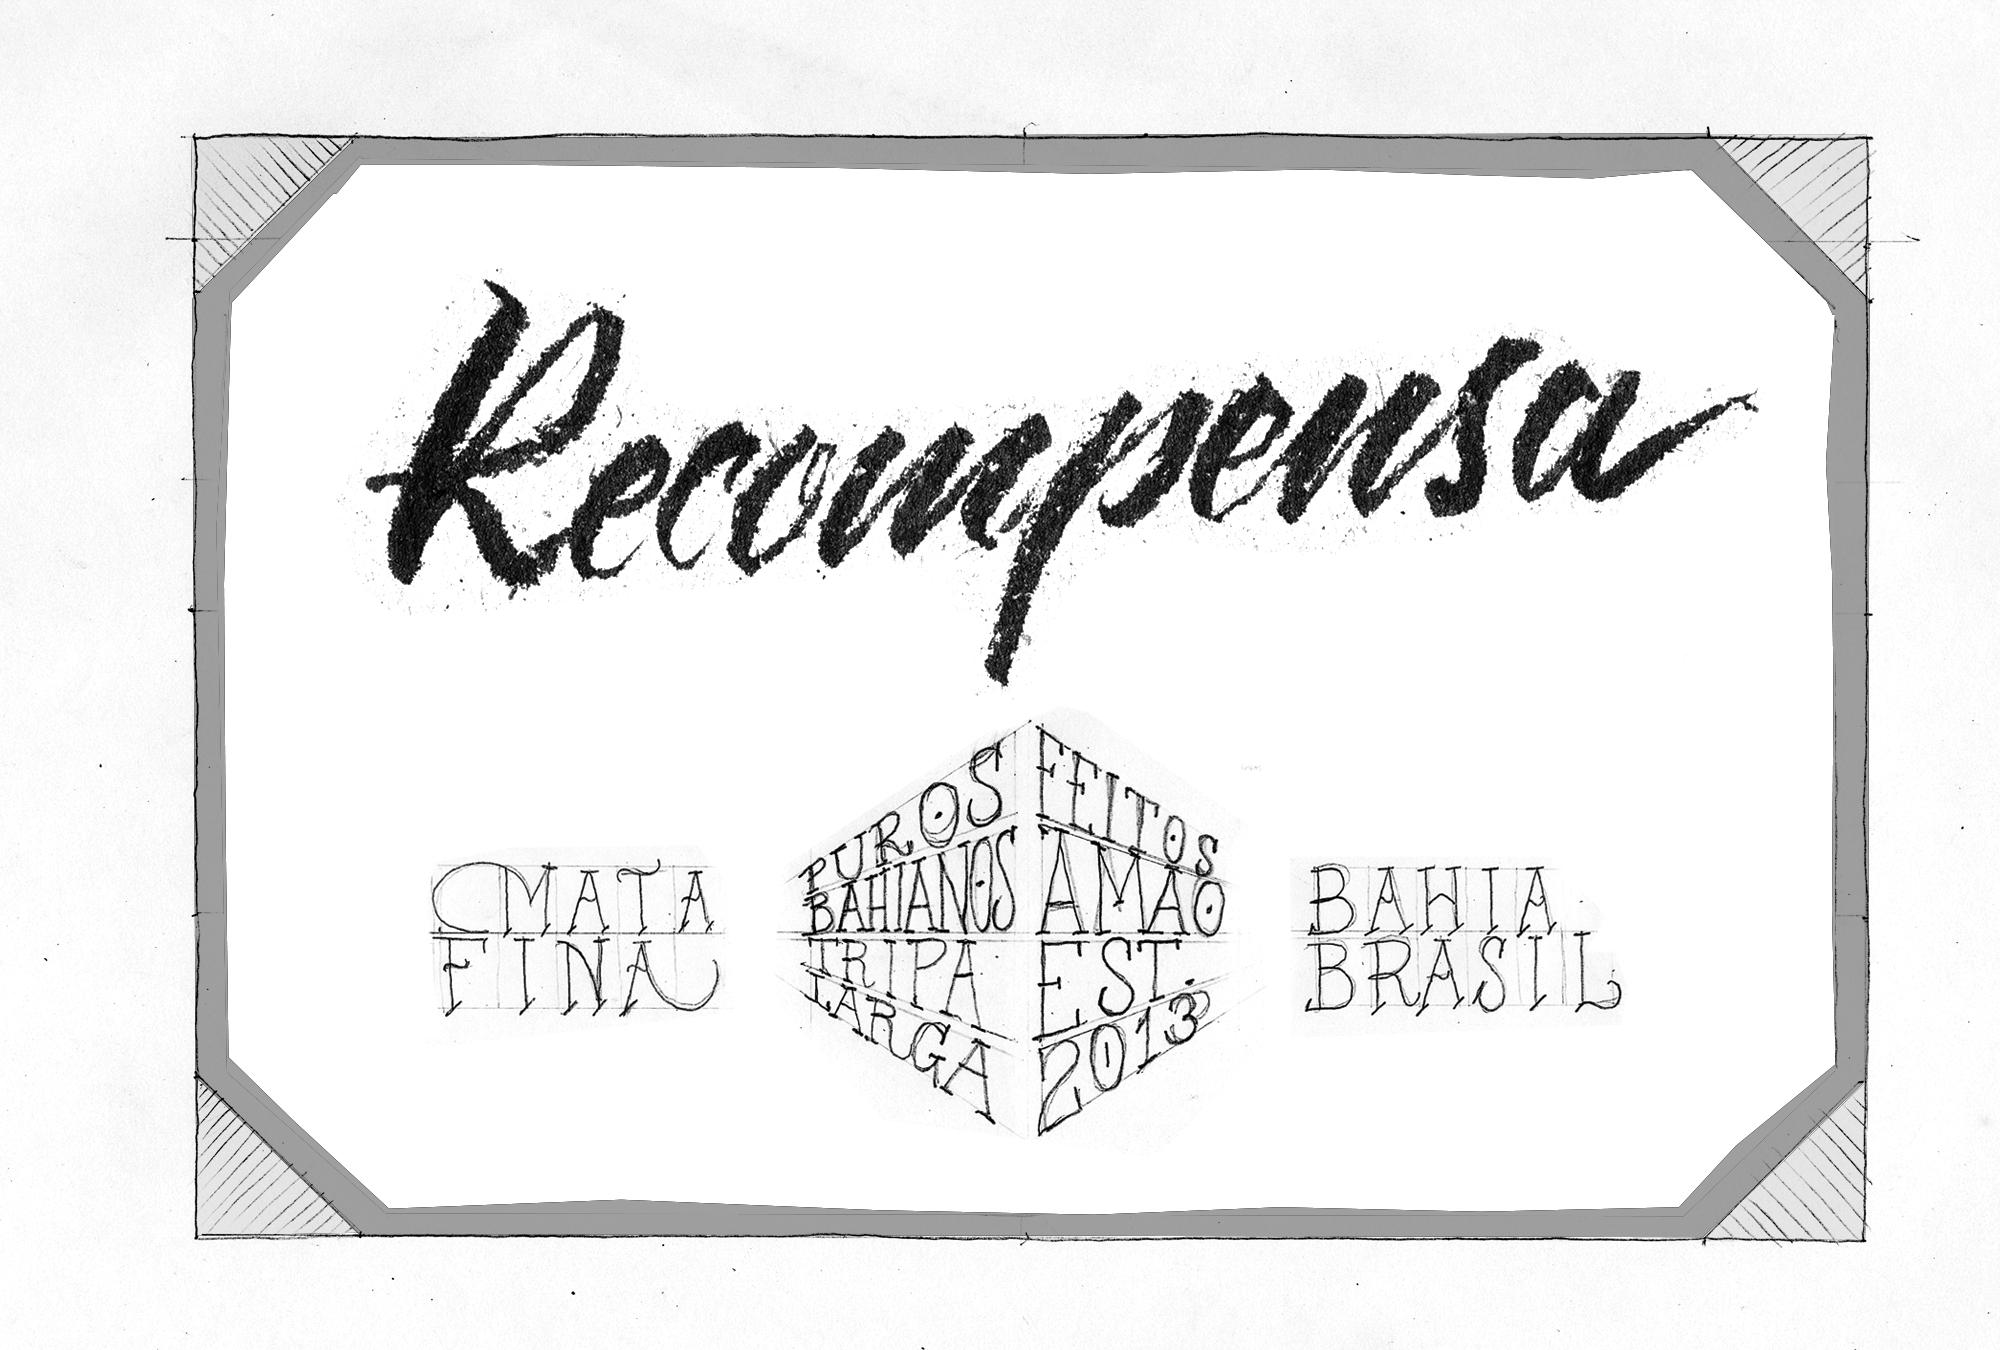 Recompensa Cigars - image 7 - student project